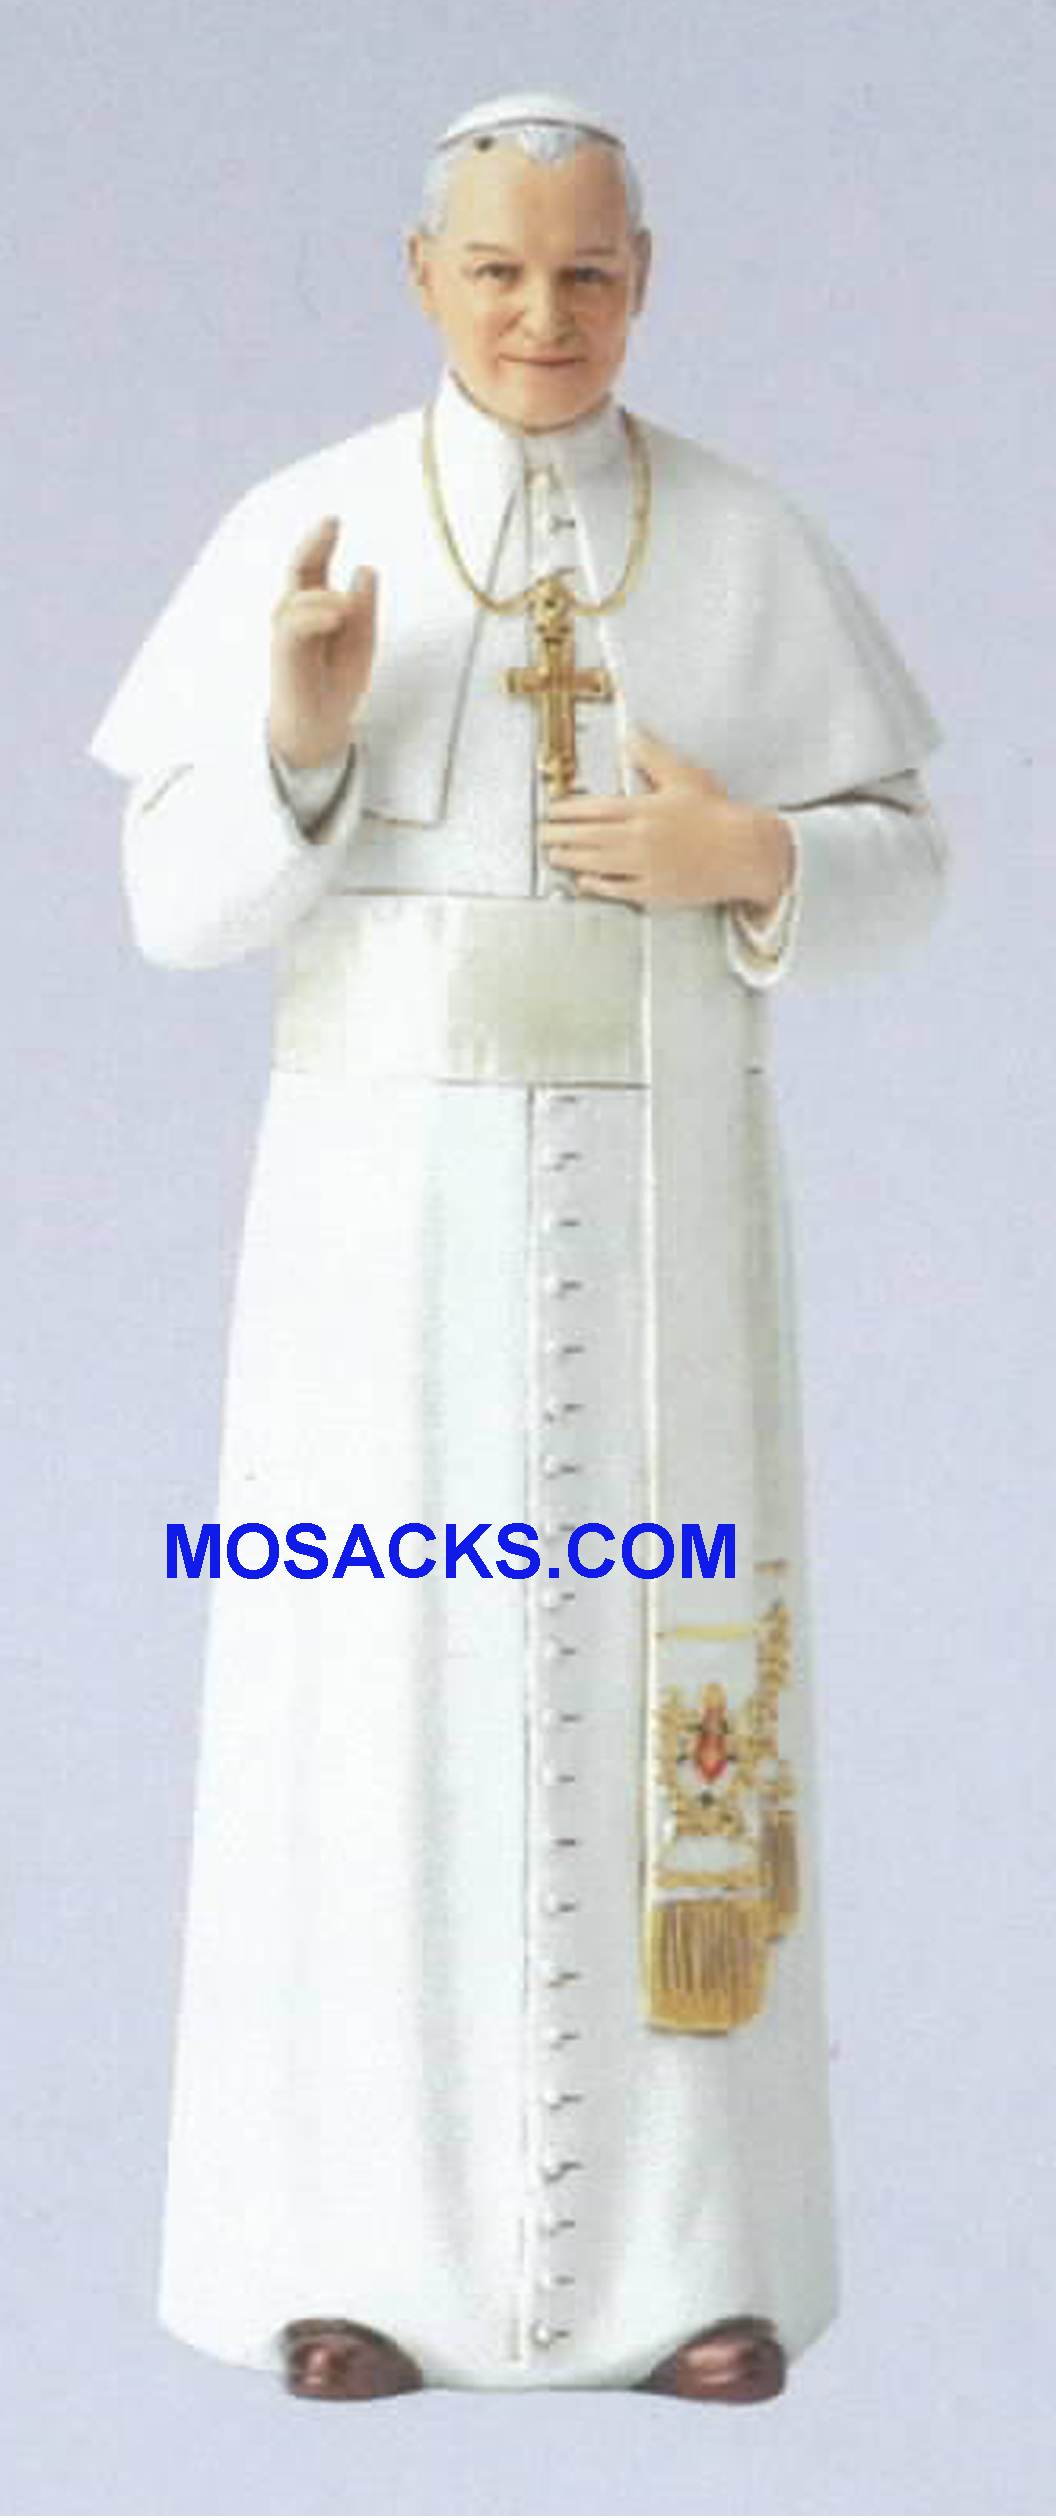 Pope St. John Paul II Products